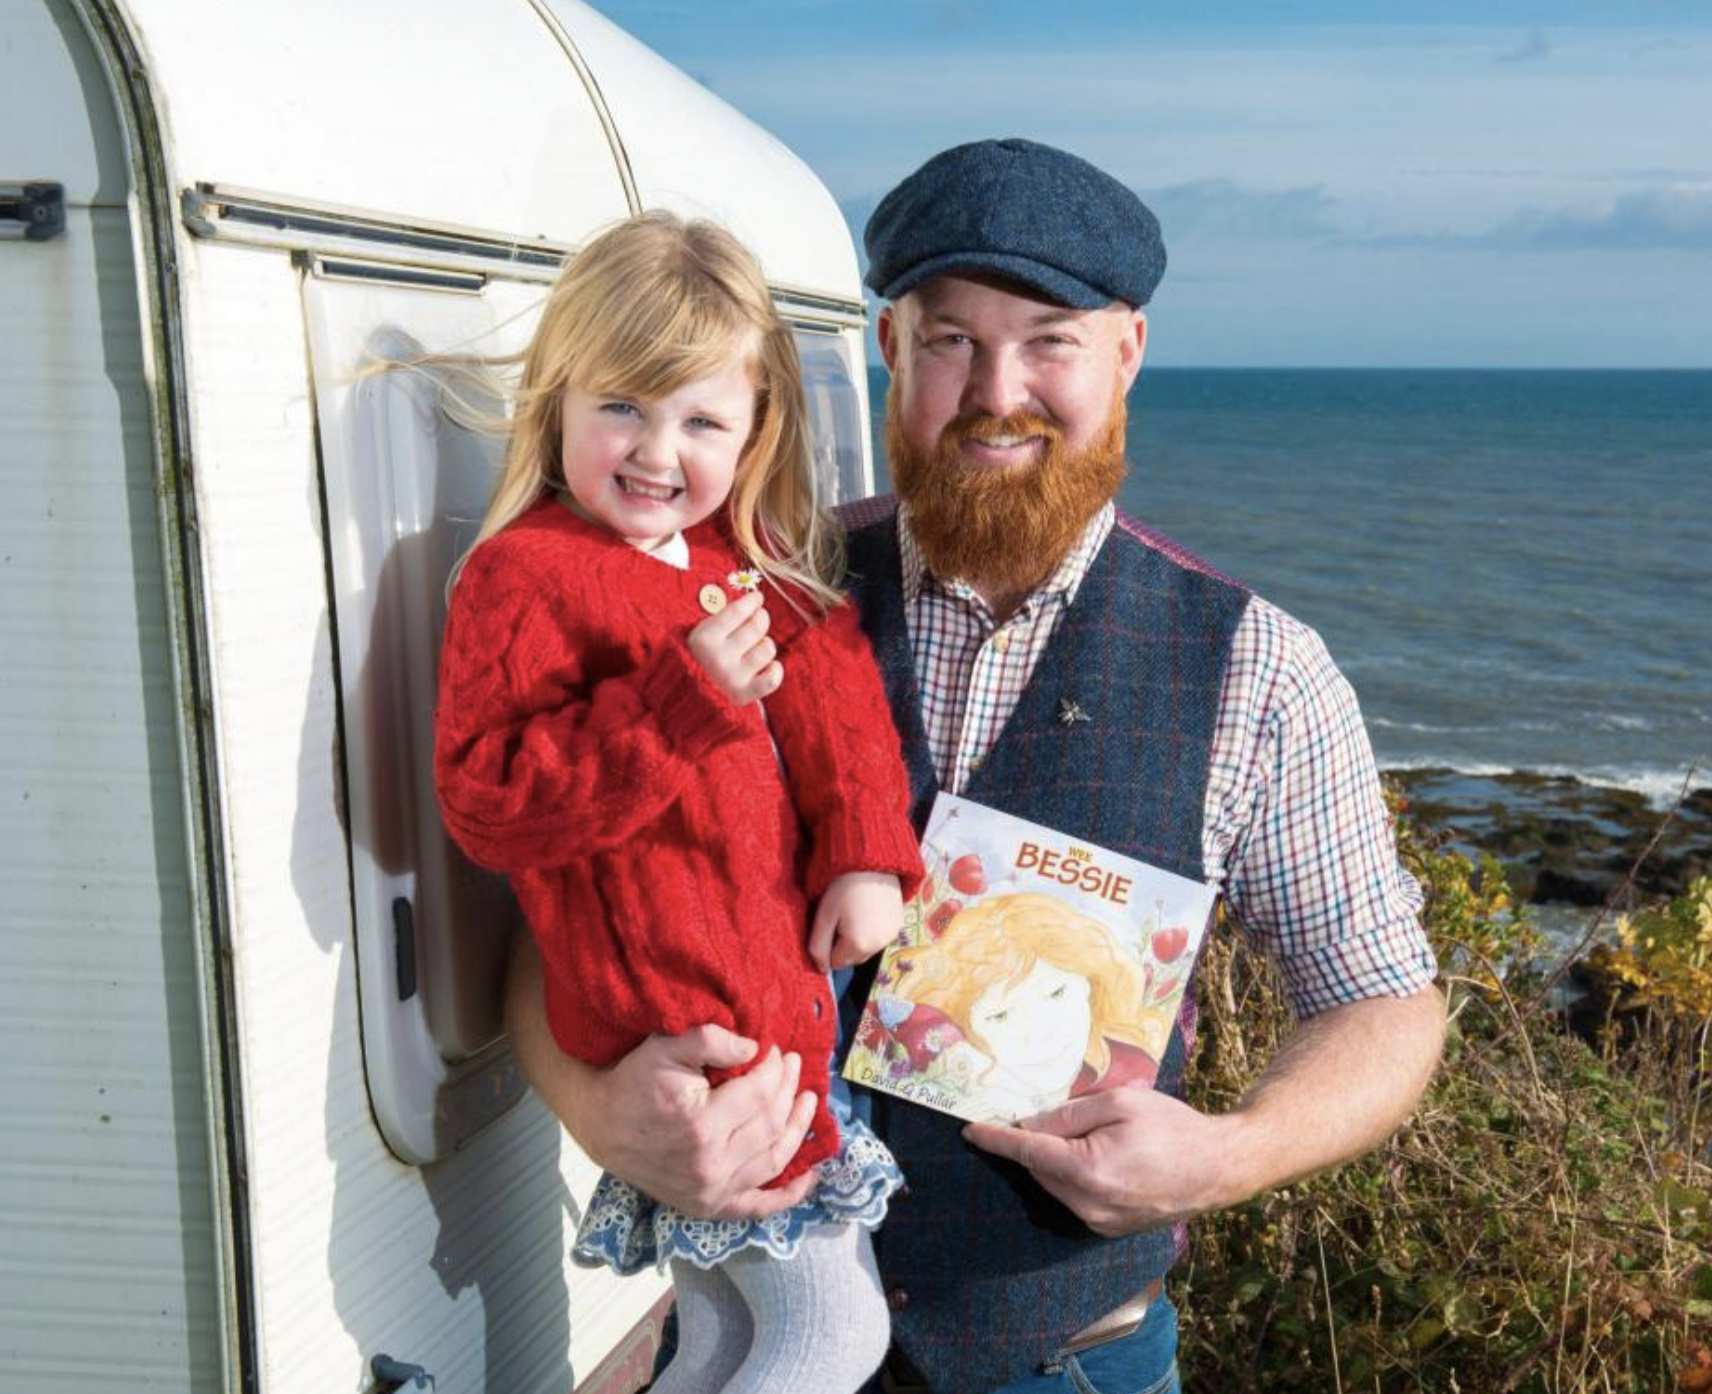 David Pullar holding his daughter and his children book Wee Bessie. A white trailer to the left and the ocean to the right.